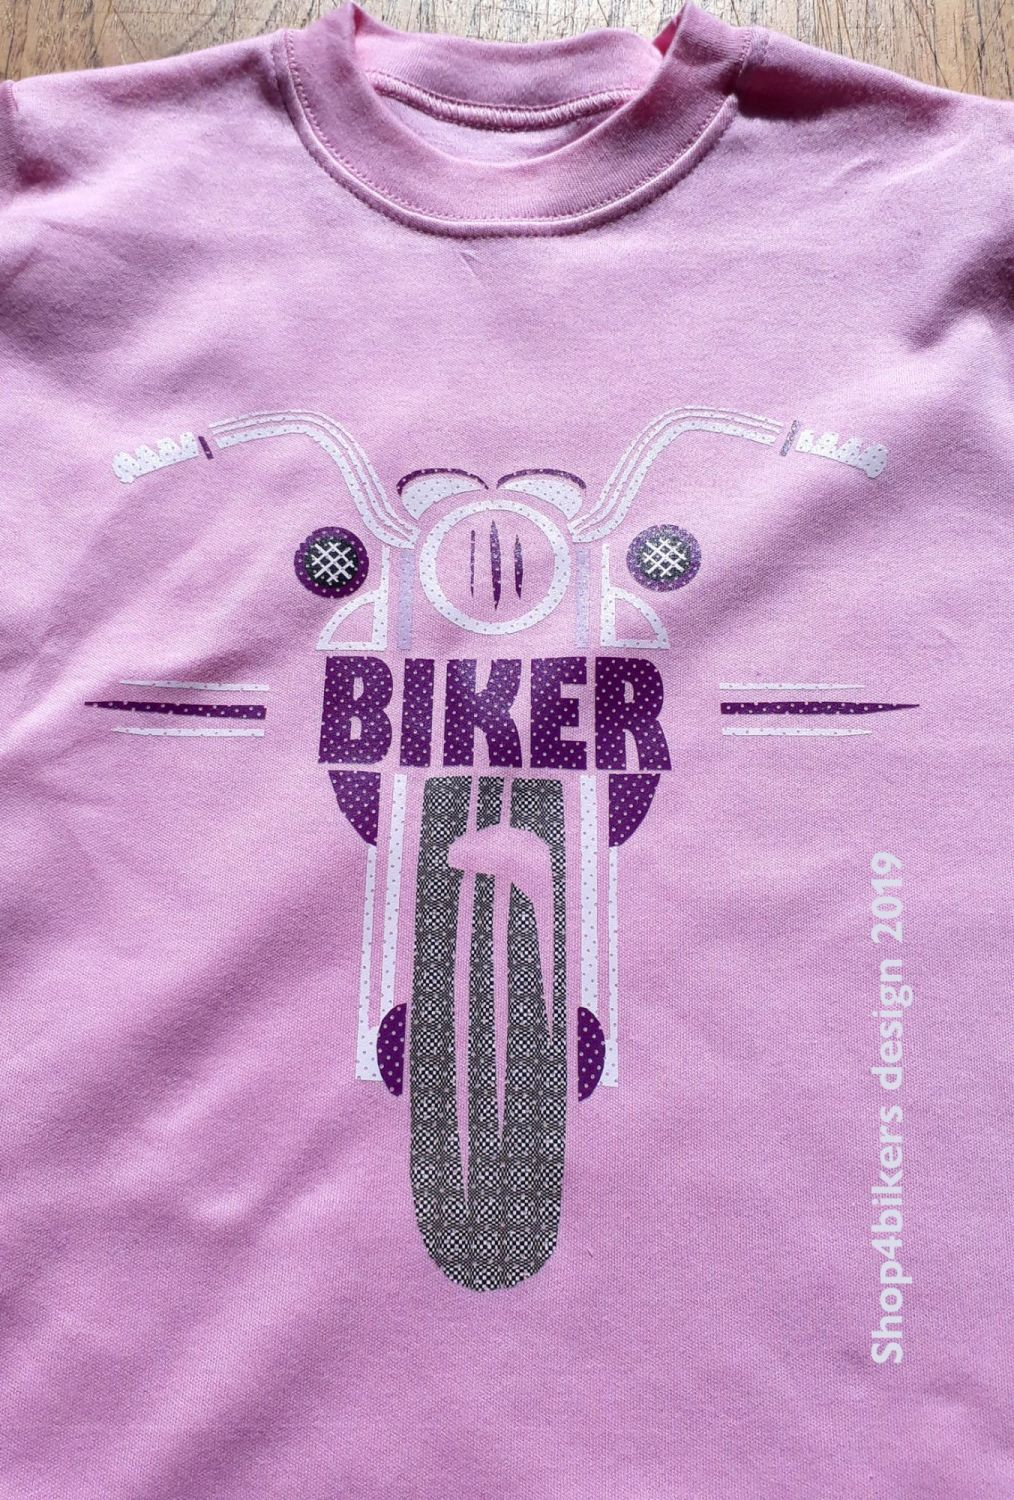 Pink Purple biker motorcycle toddler baby childrens kids t-shirt 100% cotto